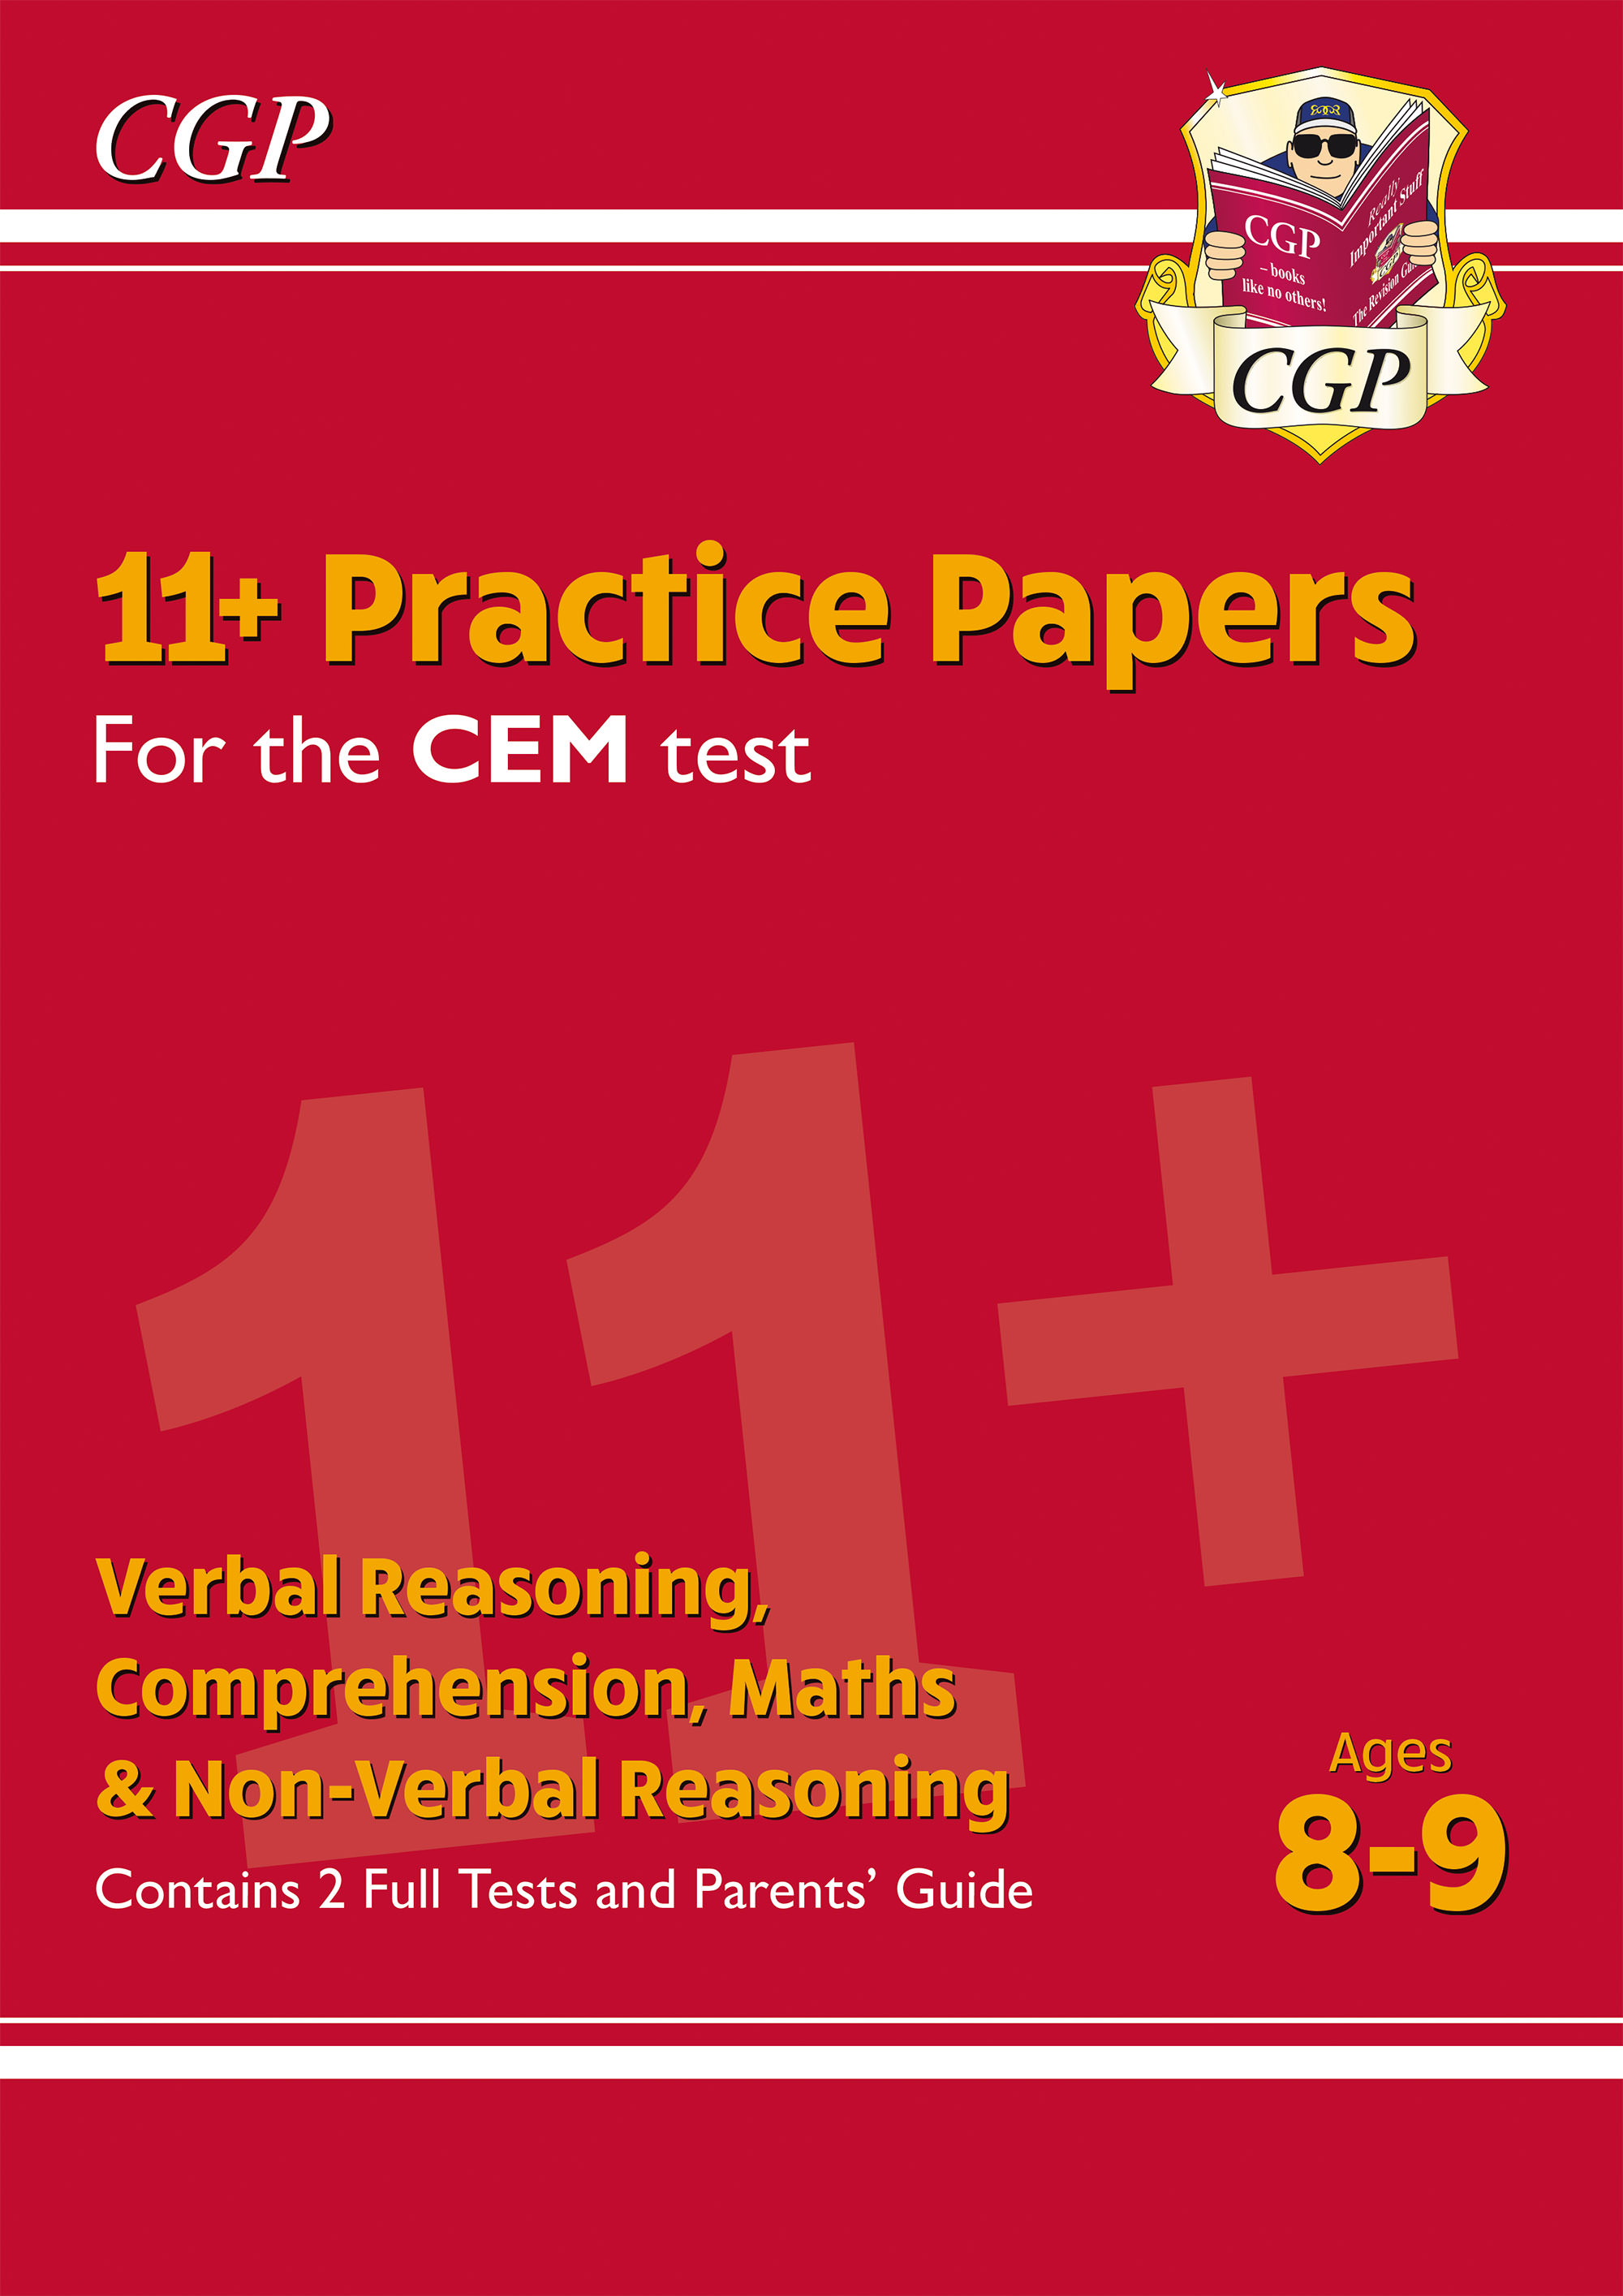 ELY4PDE1DK - New 11+ CEM Practice Papers - Ages 8-9 (with Parents' Guide)